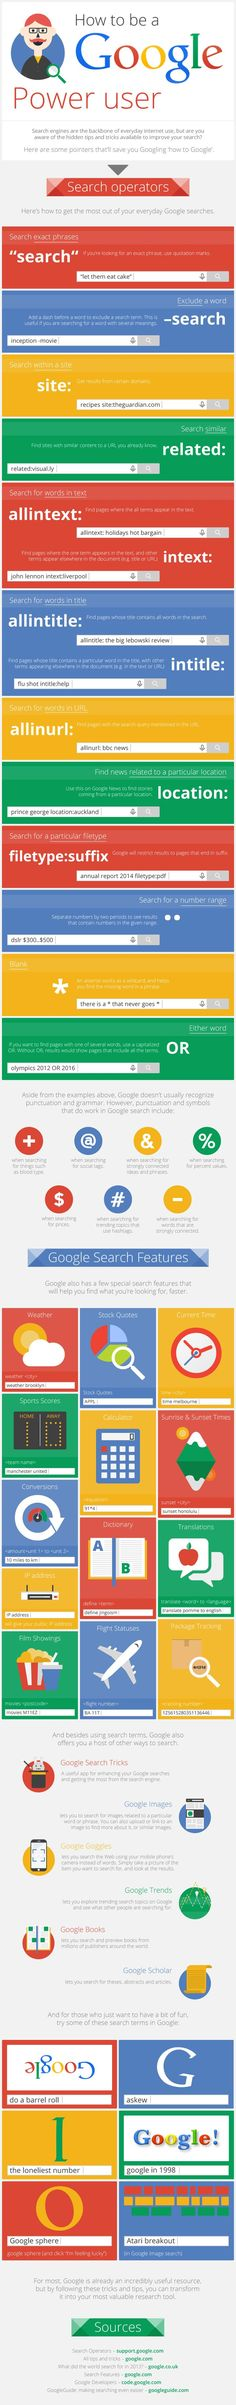 How To Be A Google Power User #infographic